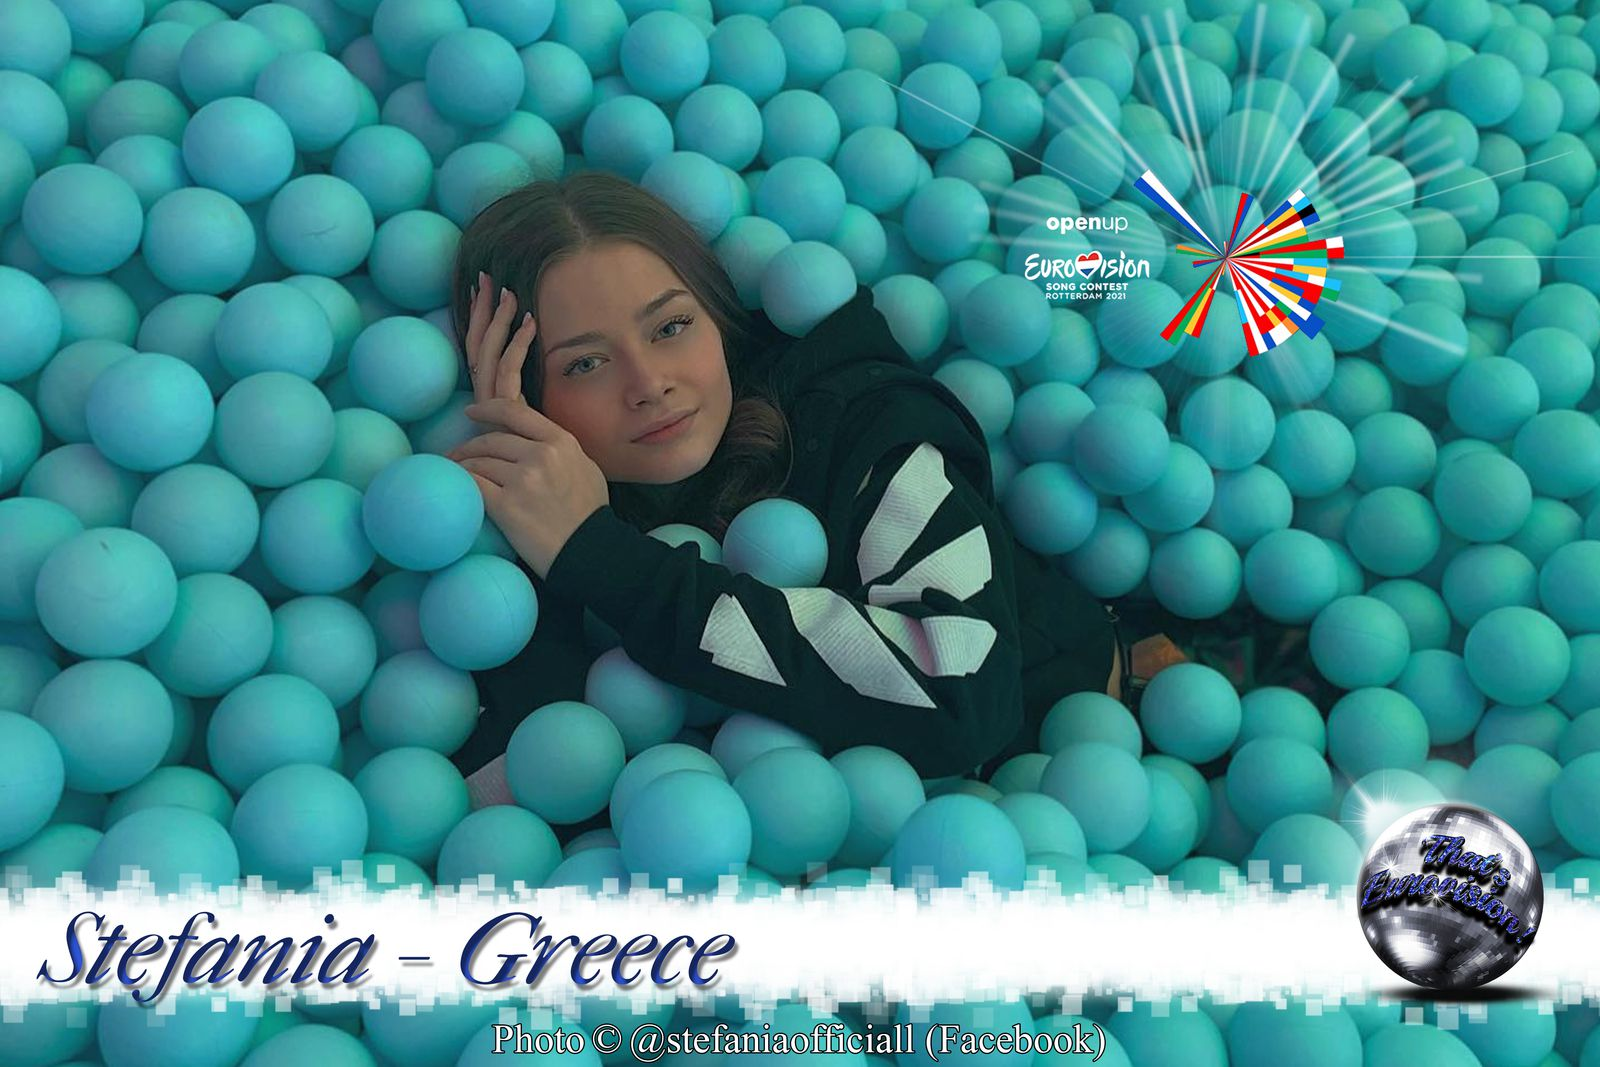 Greece 2021 - Stefania (Last Dance)